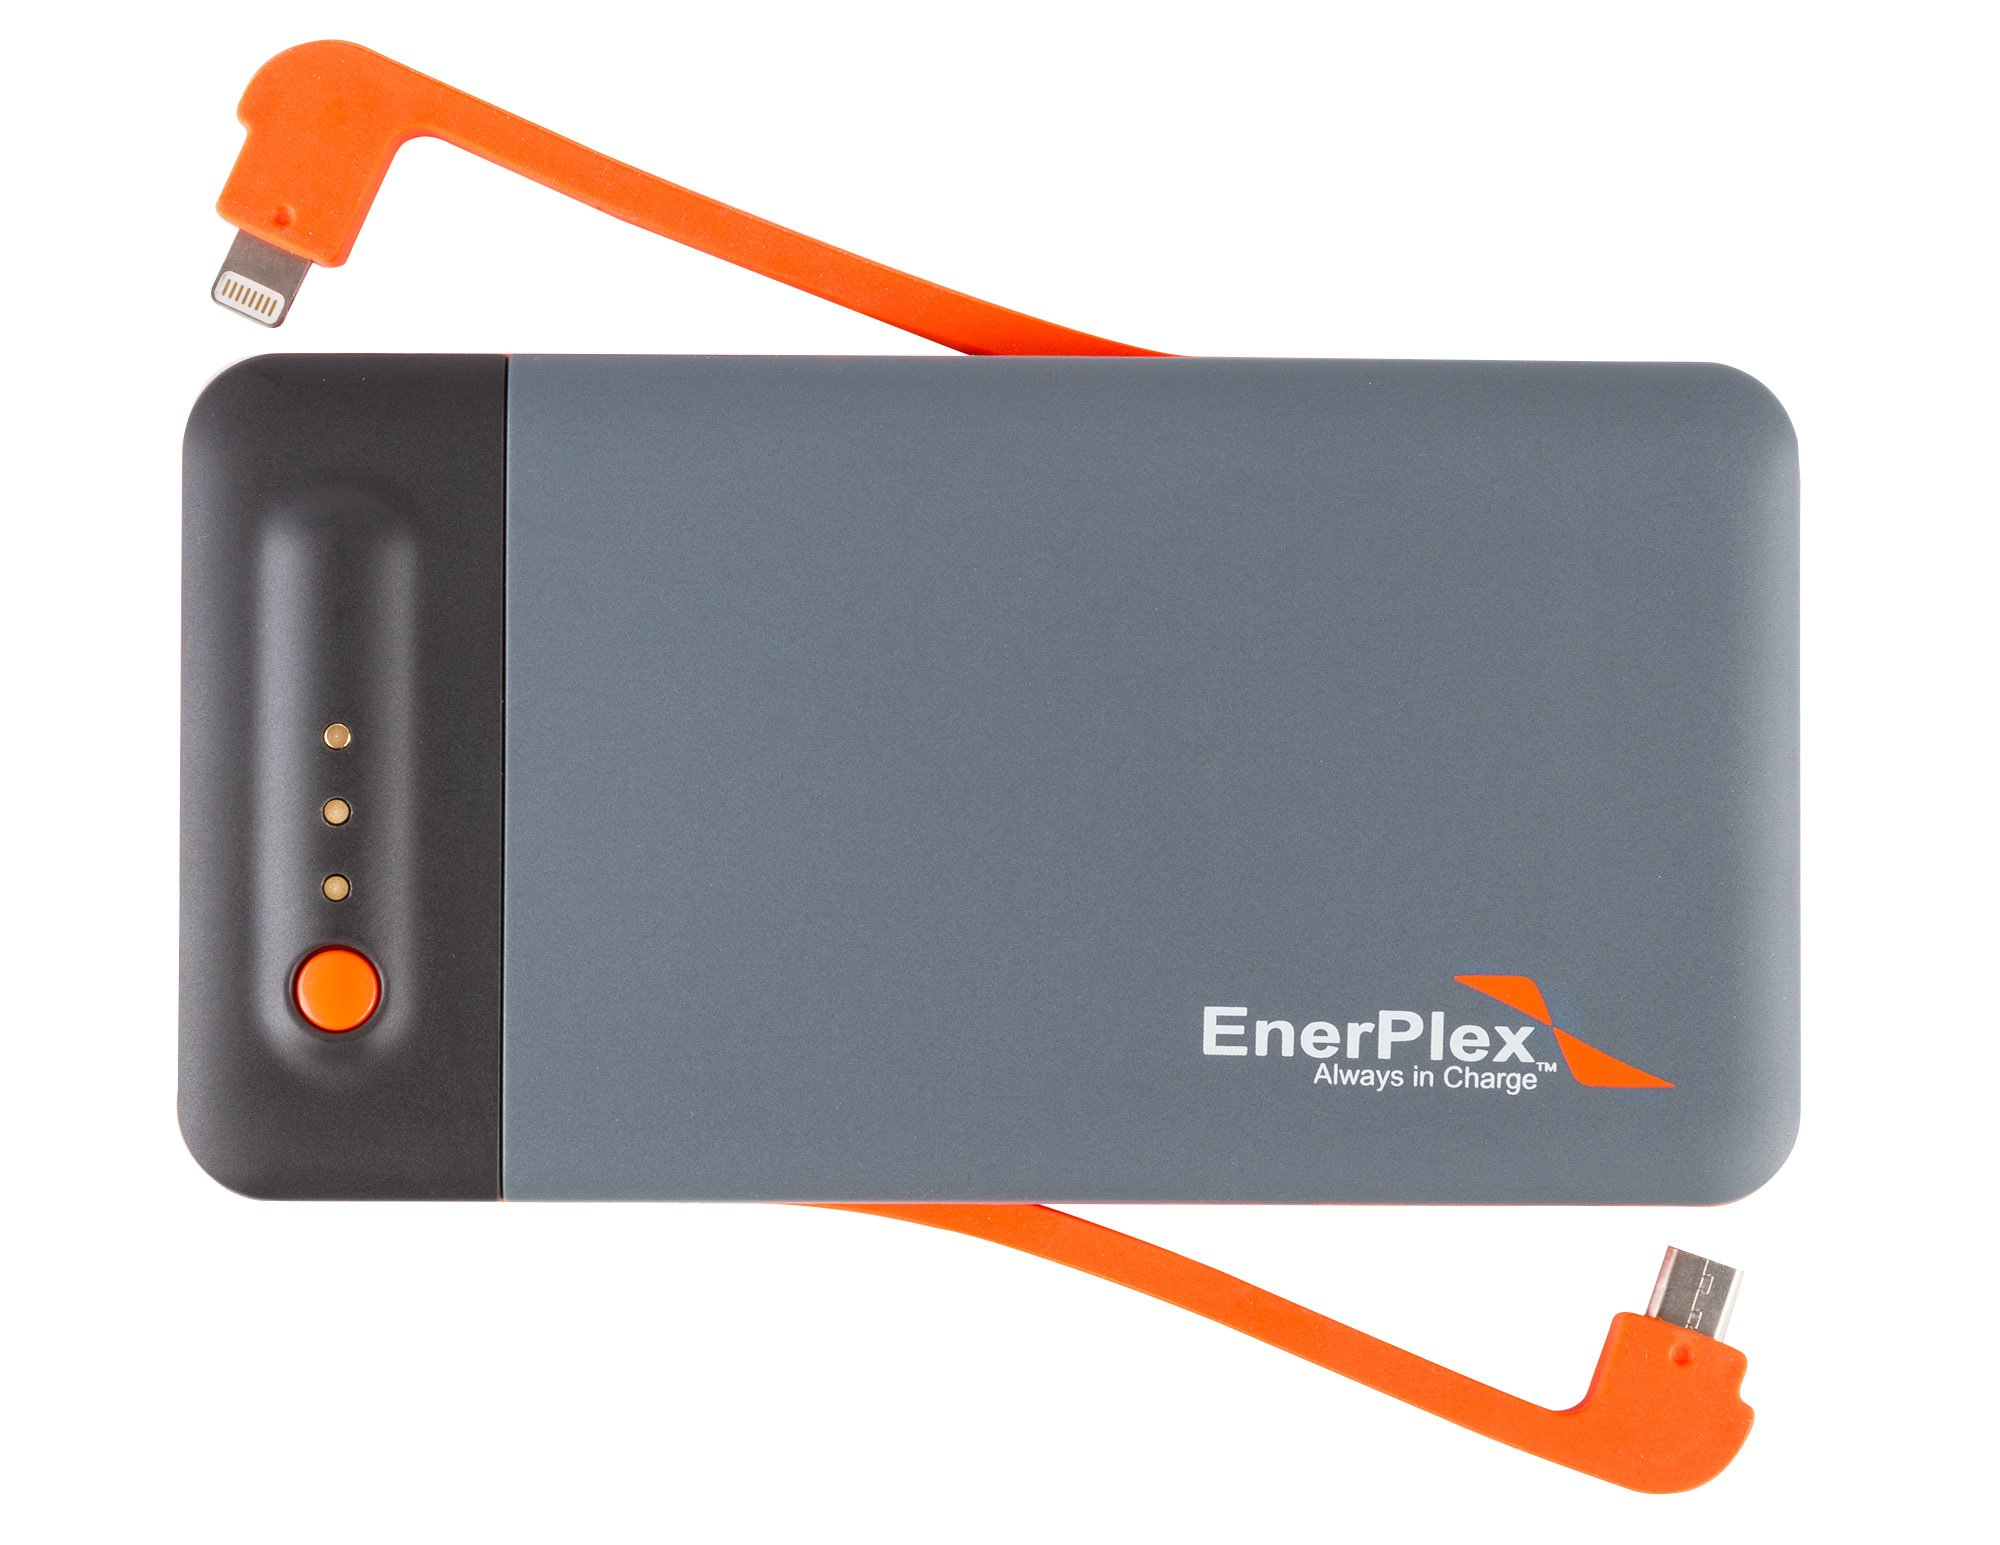 EnerPlex Jumpr Stack 9 Power Bank for Smartphones, MP3 Players and Other Mobile Devices (JU-STACK-9) by Ascent Solar